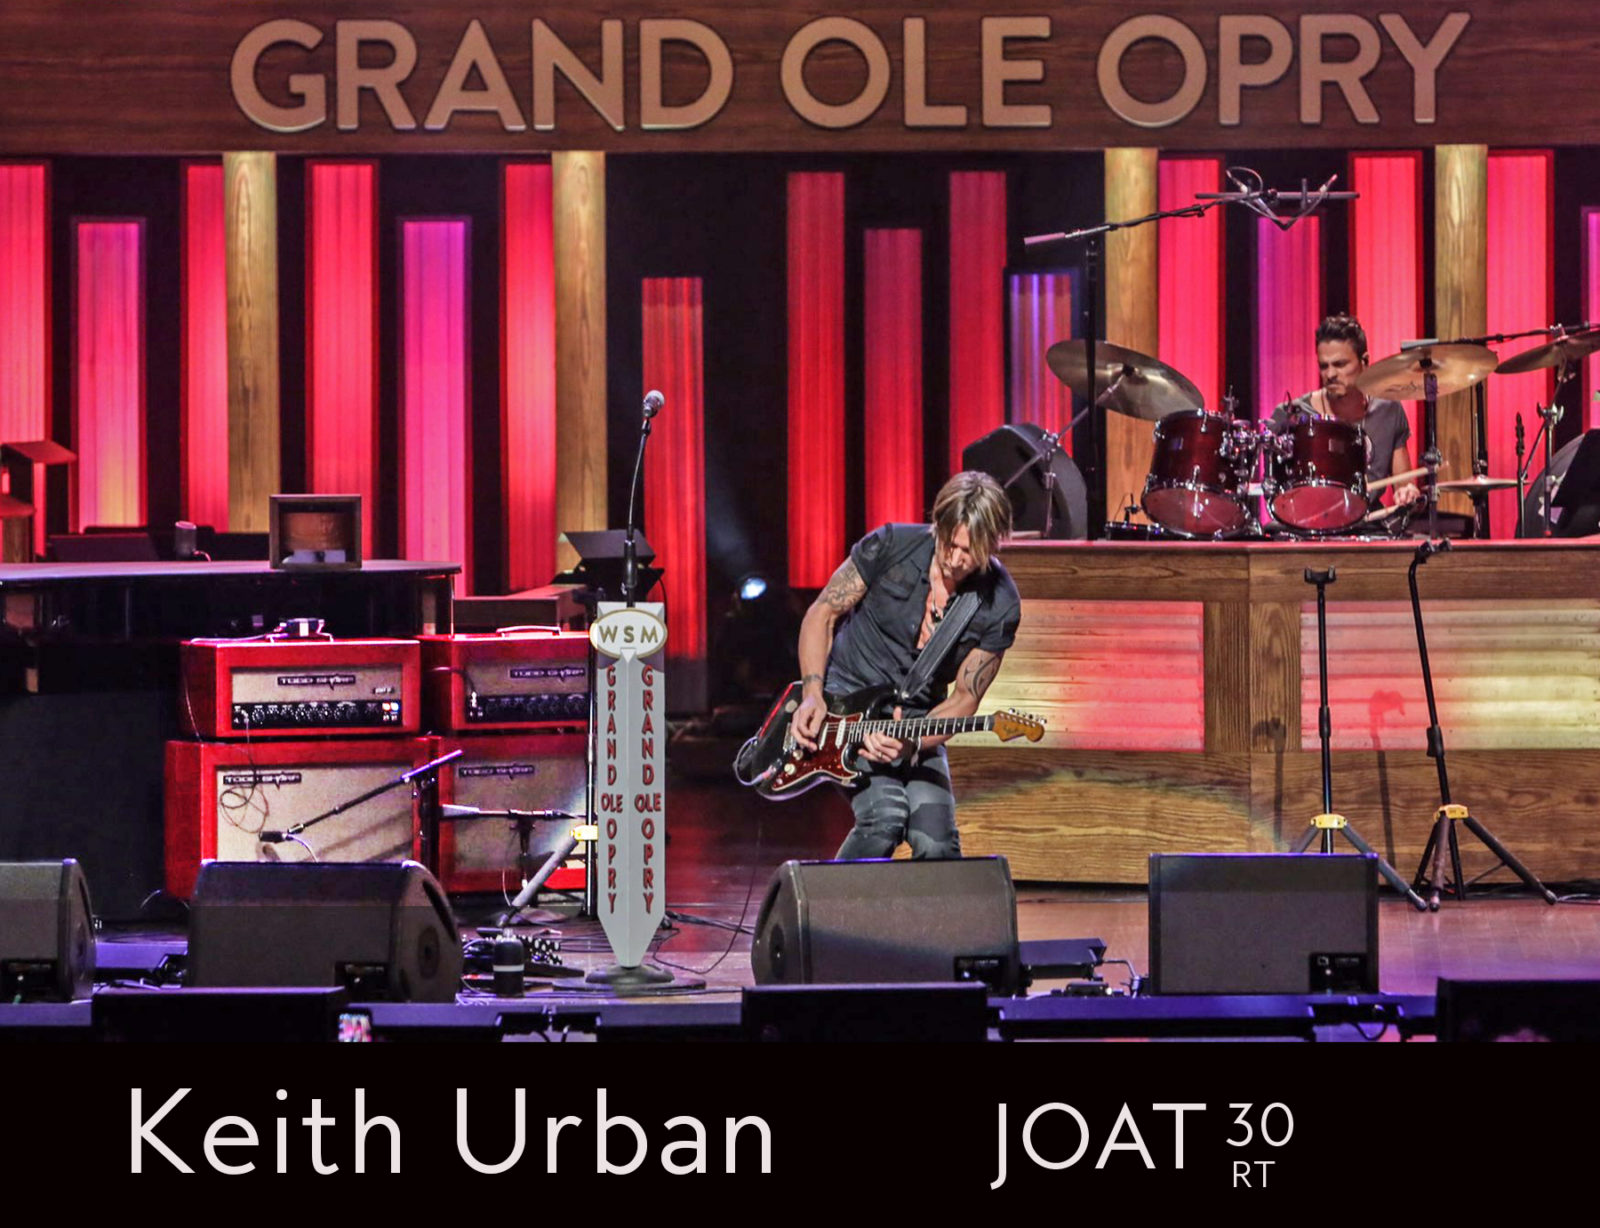 Keith Urban chooses JOAT 30RT's